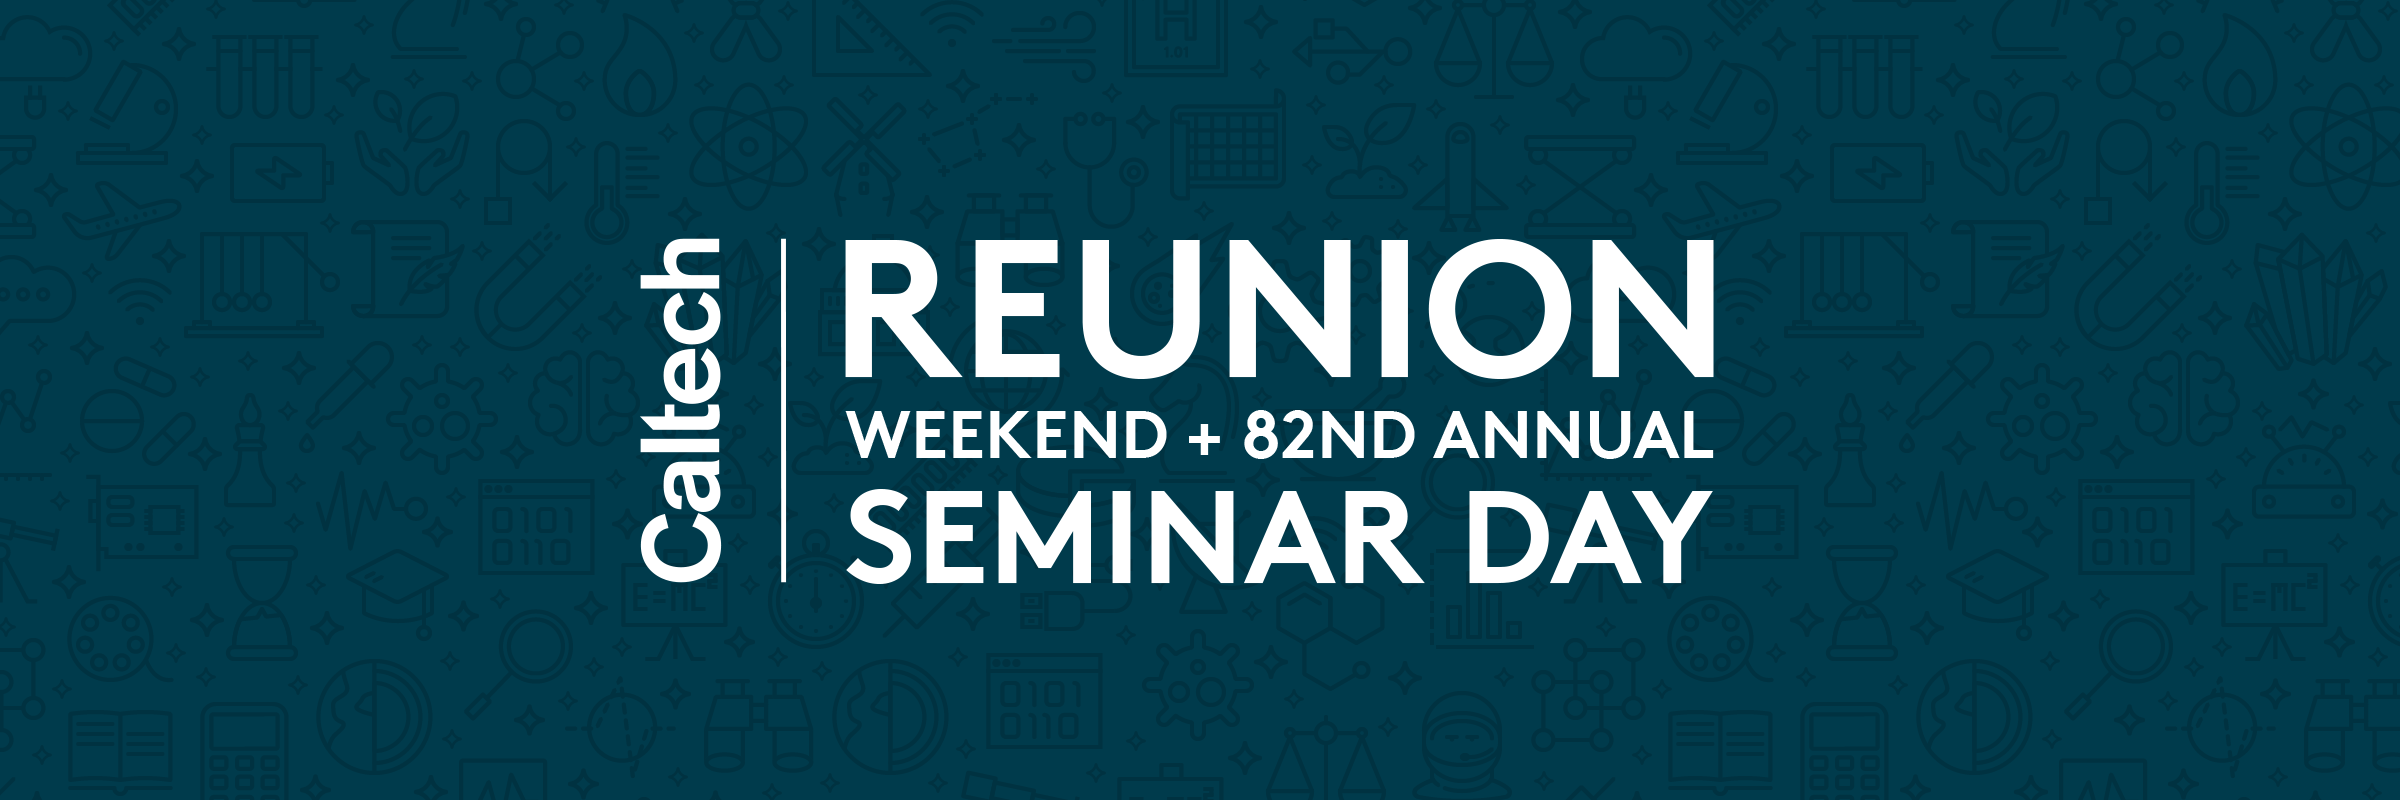 reunionseminar2019_emailbanner_combined.png